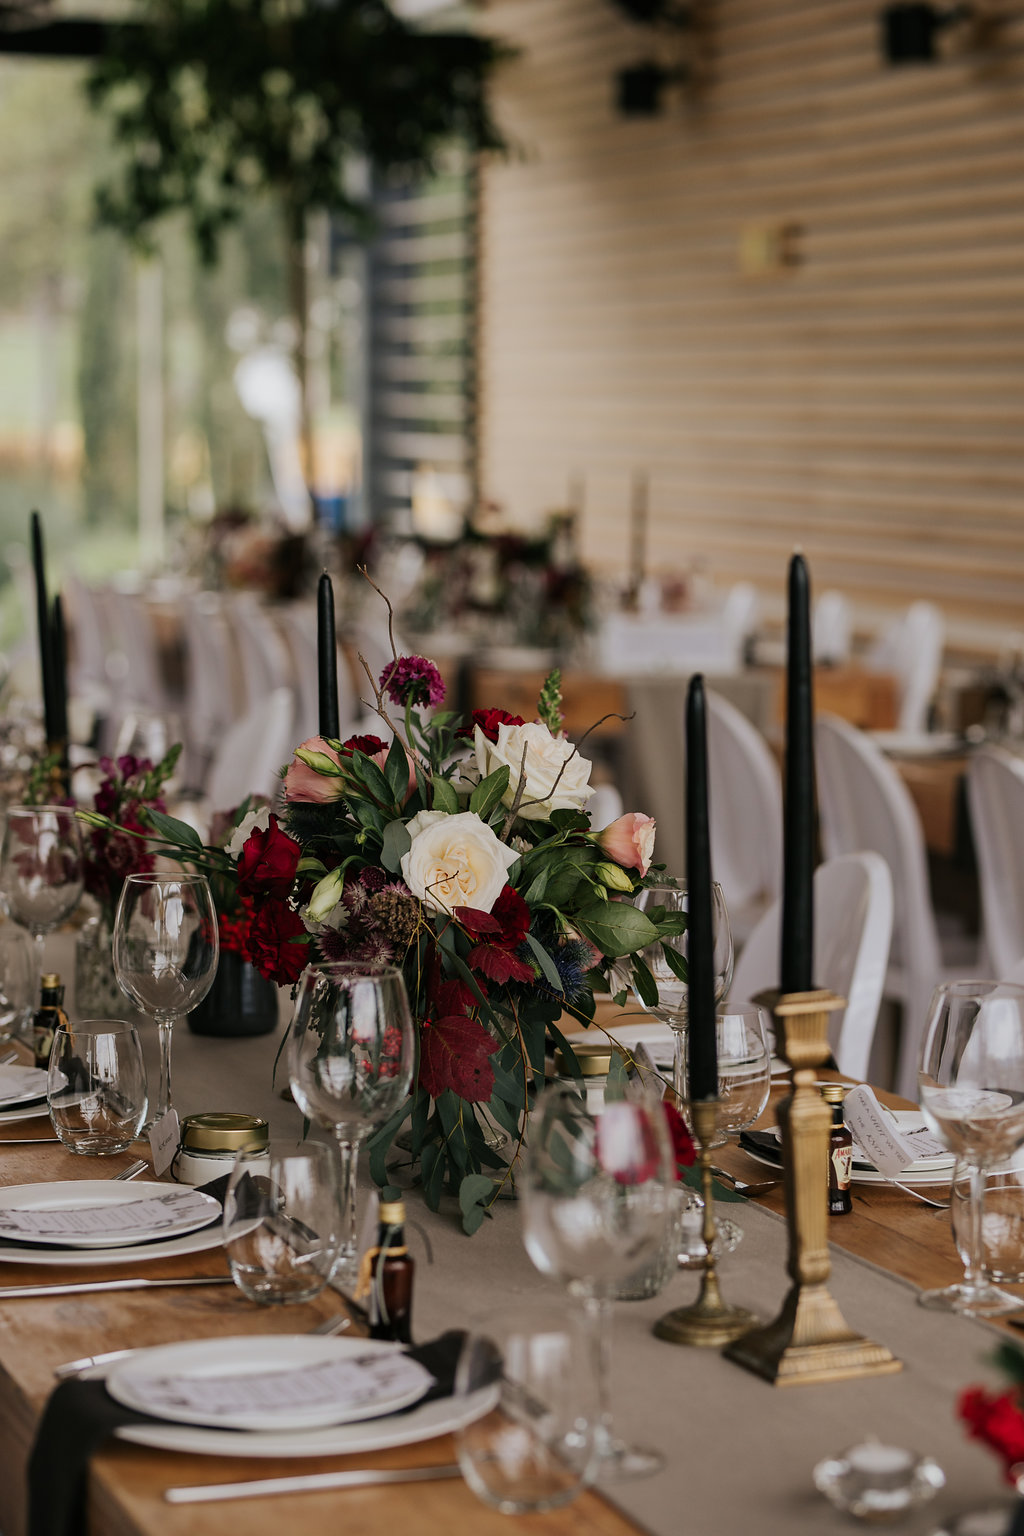 Wildeflower flowers wedding events cape town-06